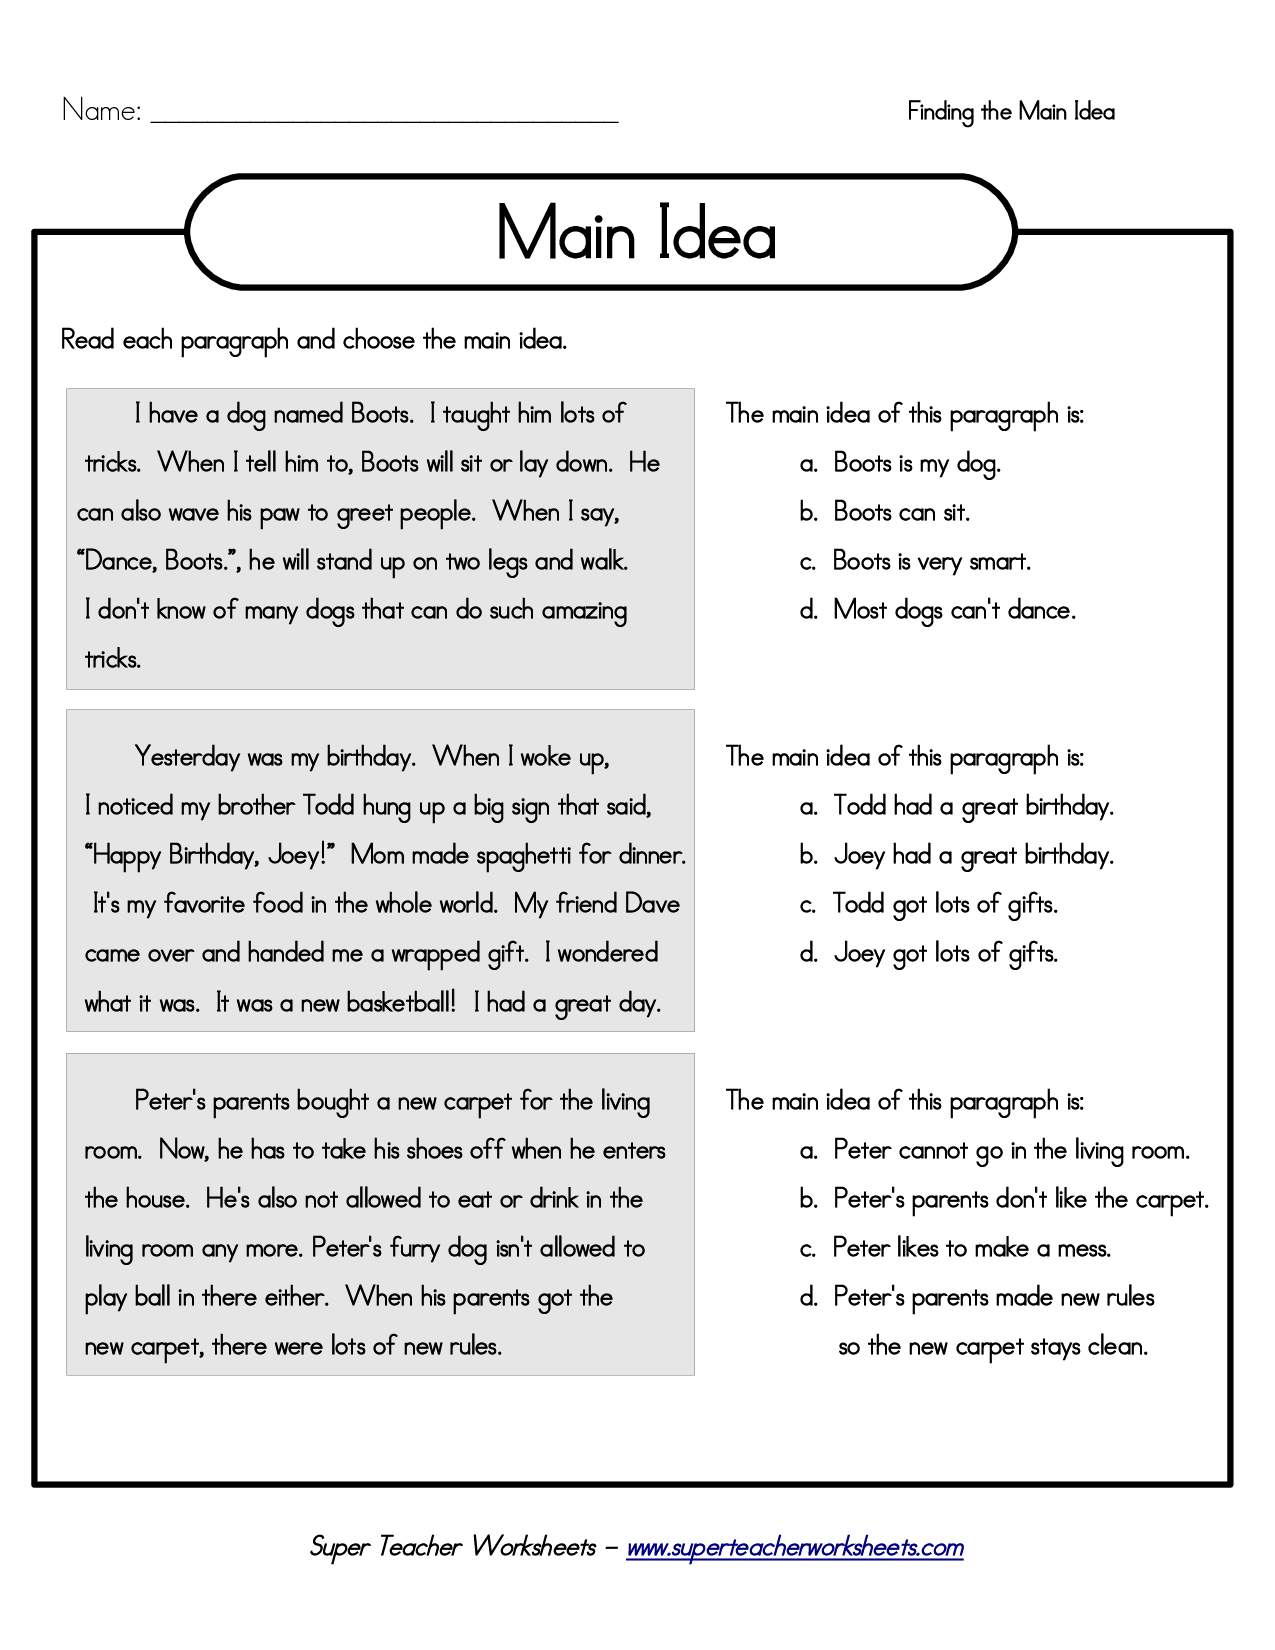 worksheet Teacher Super Worksheets 10 best images about super teacher worksheets on pinterest gallon man bingo and reading worksheets